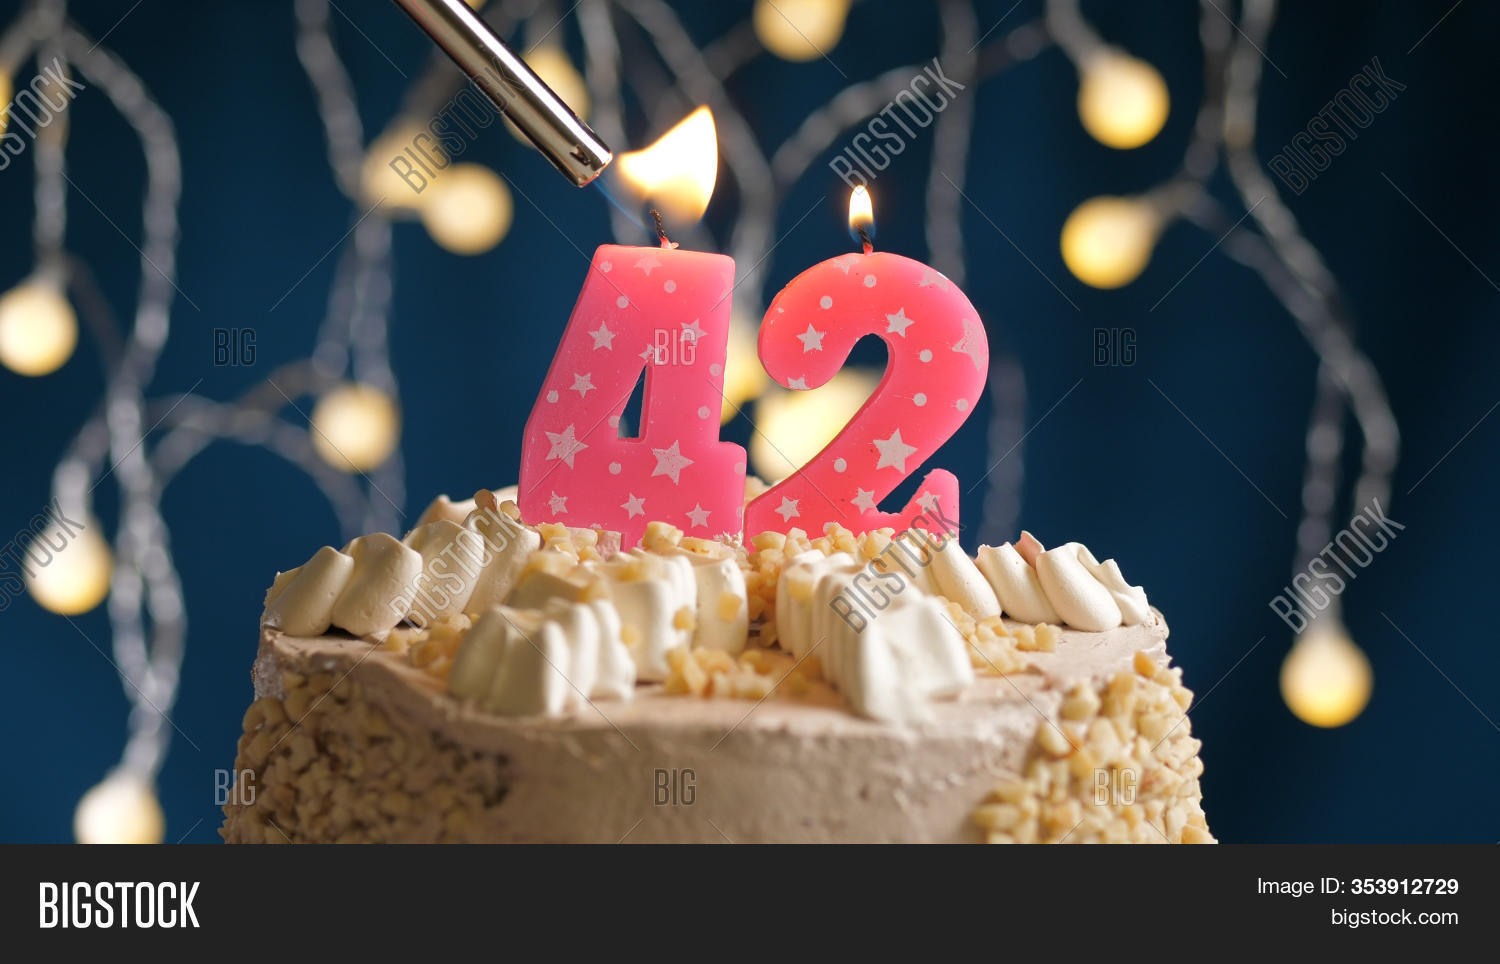 Terrific Birthday Cake 42 Image Photo Free Trial Bigstock Birthday Cards Printable Nowaargucafe Filternl